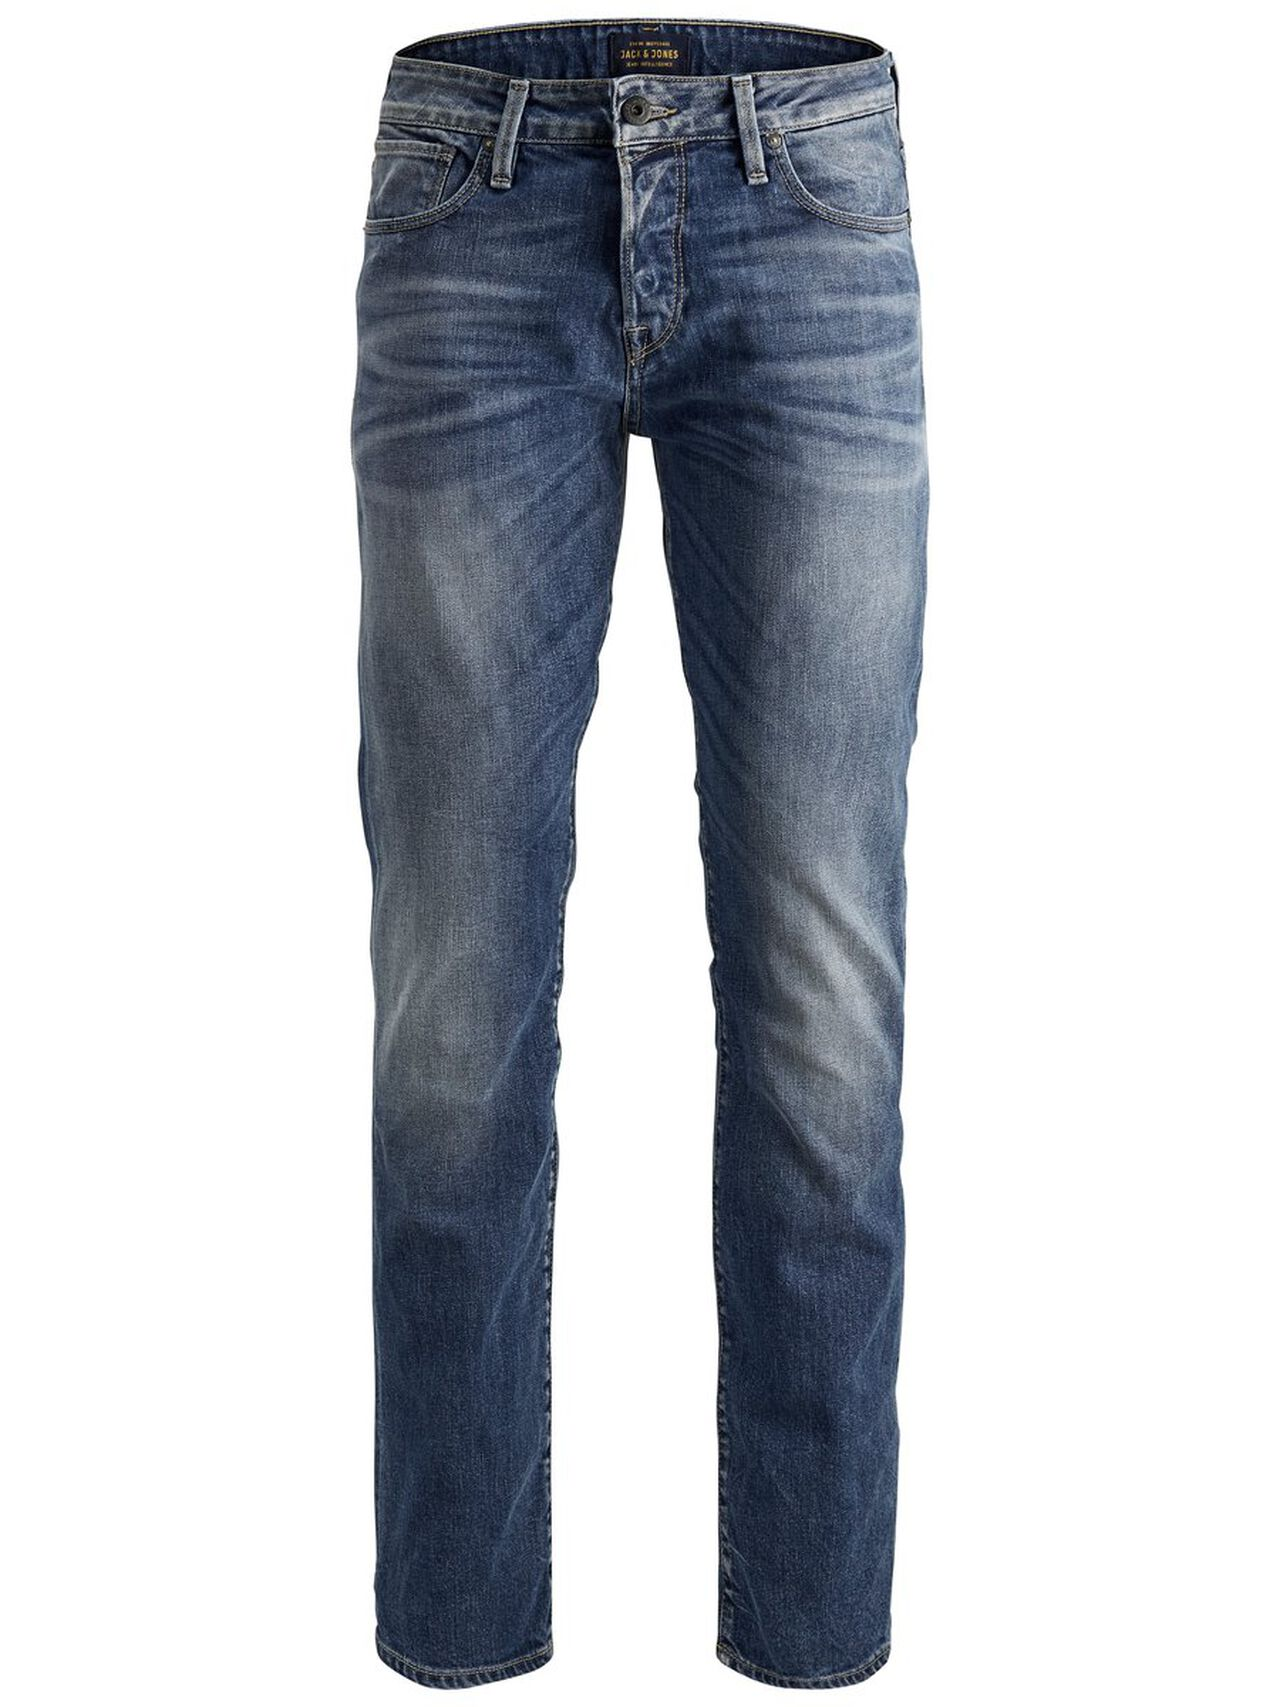 Clark Original Bl 836 Regular Fit Jeans